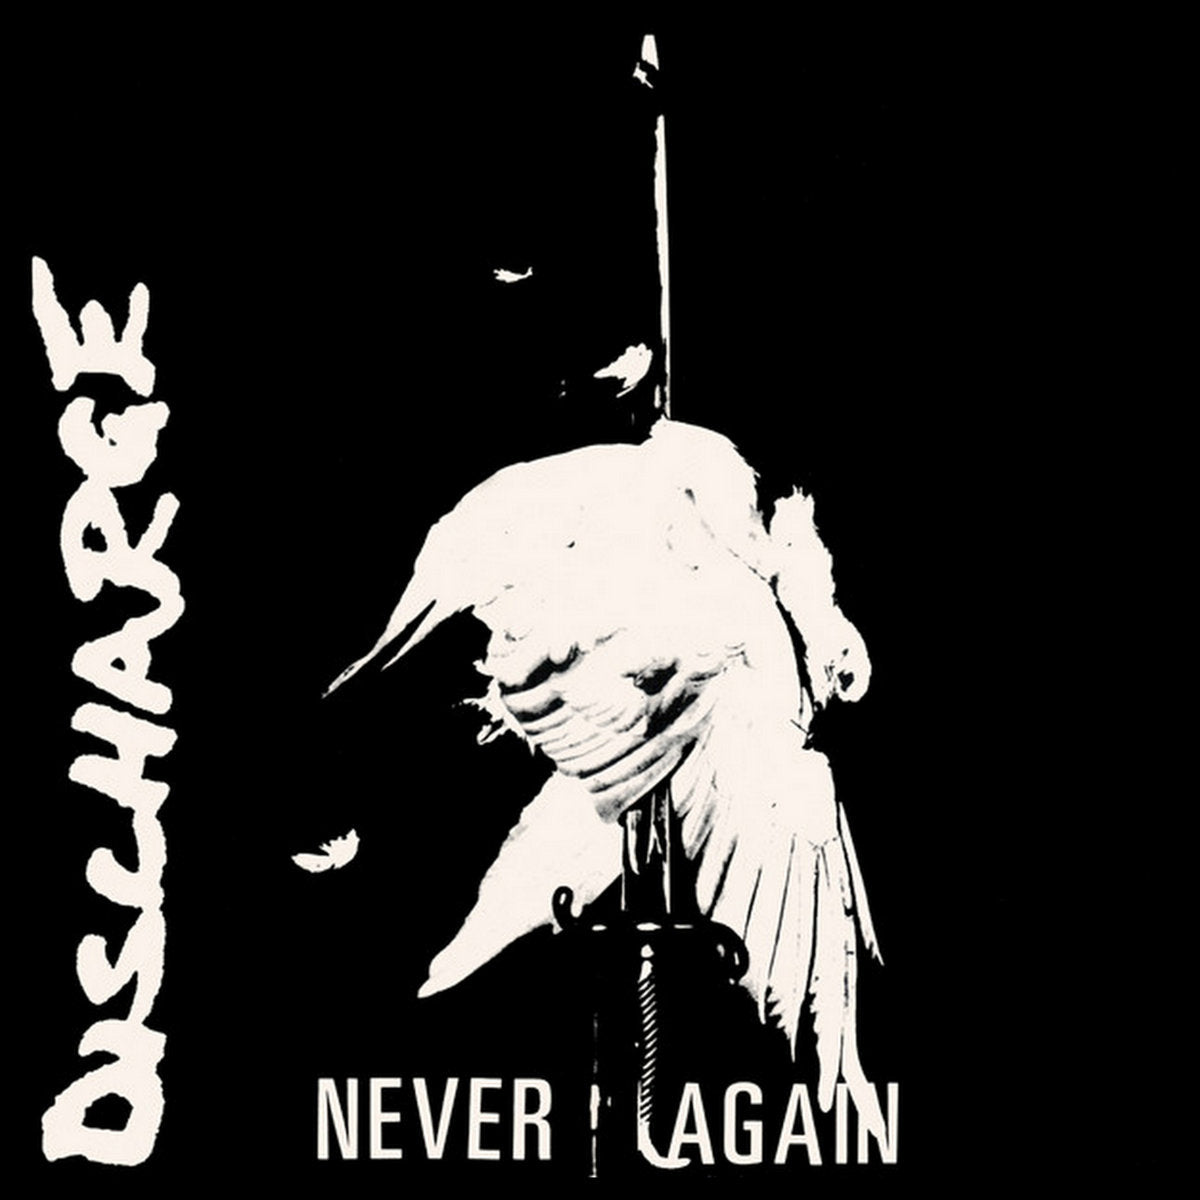 Discharge - Never Again LP - Vinyl